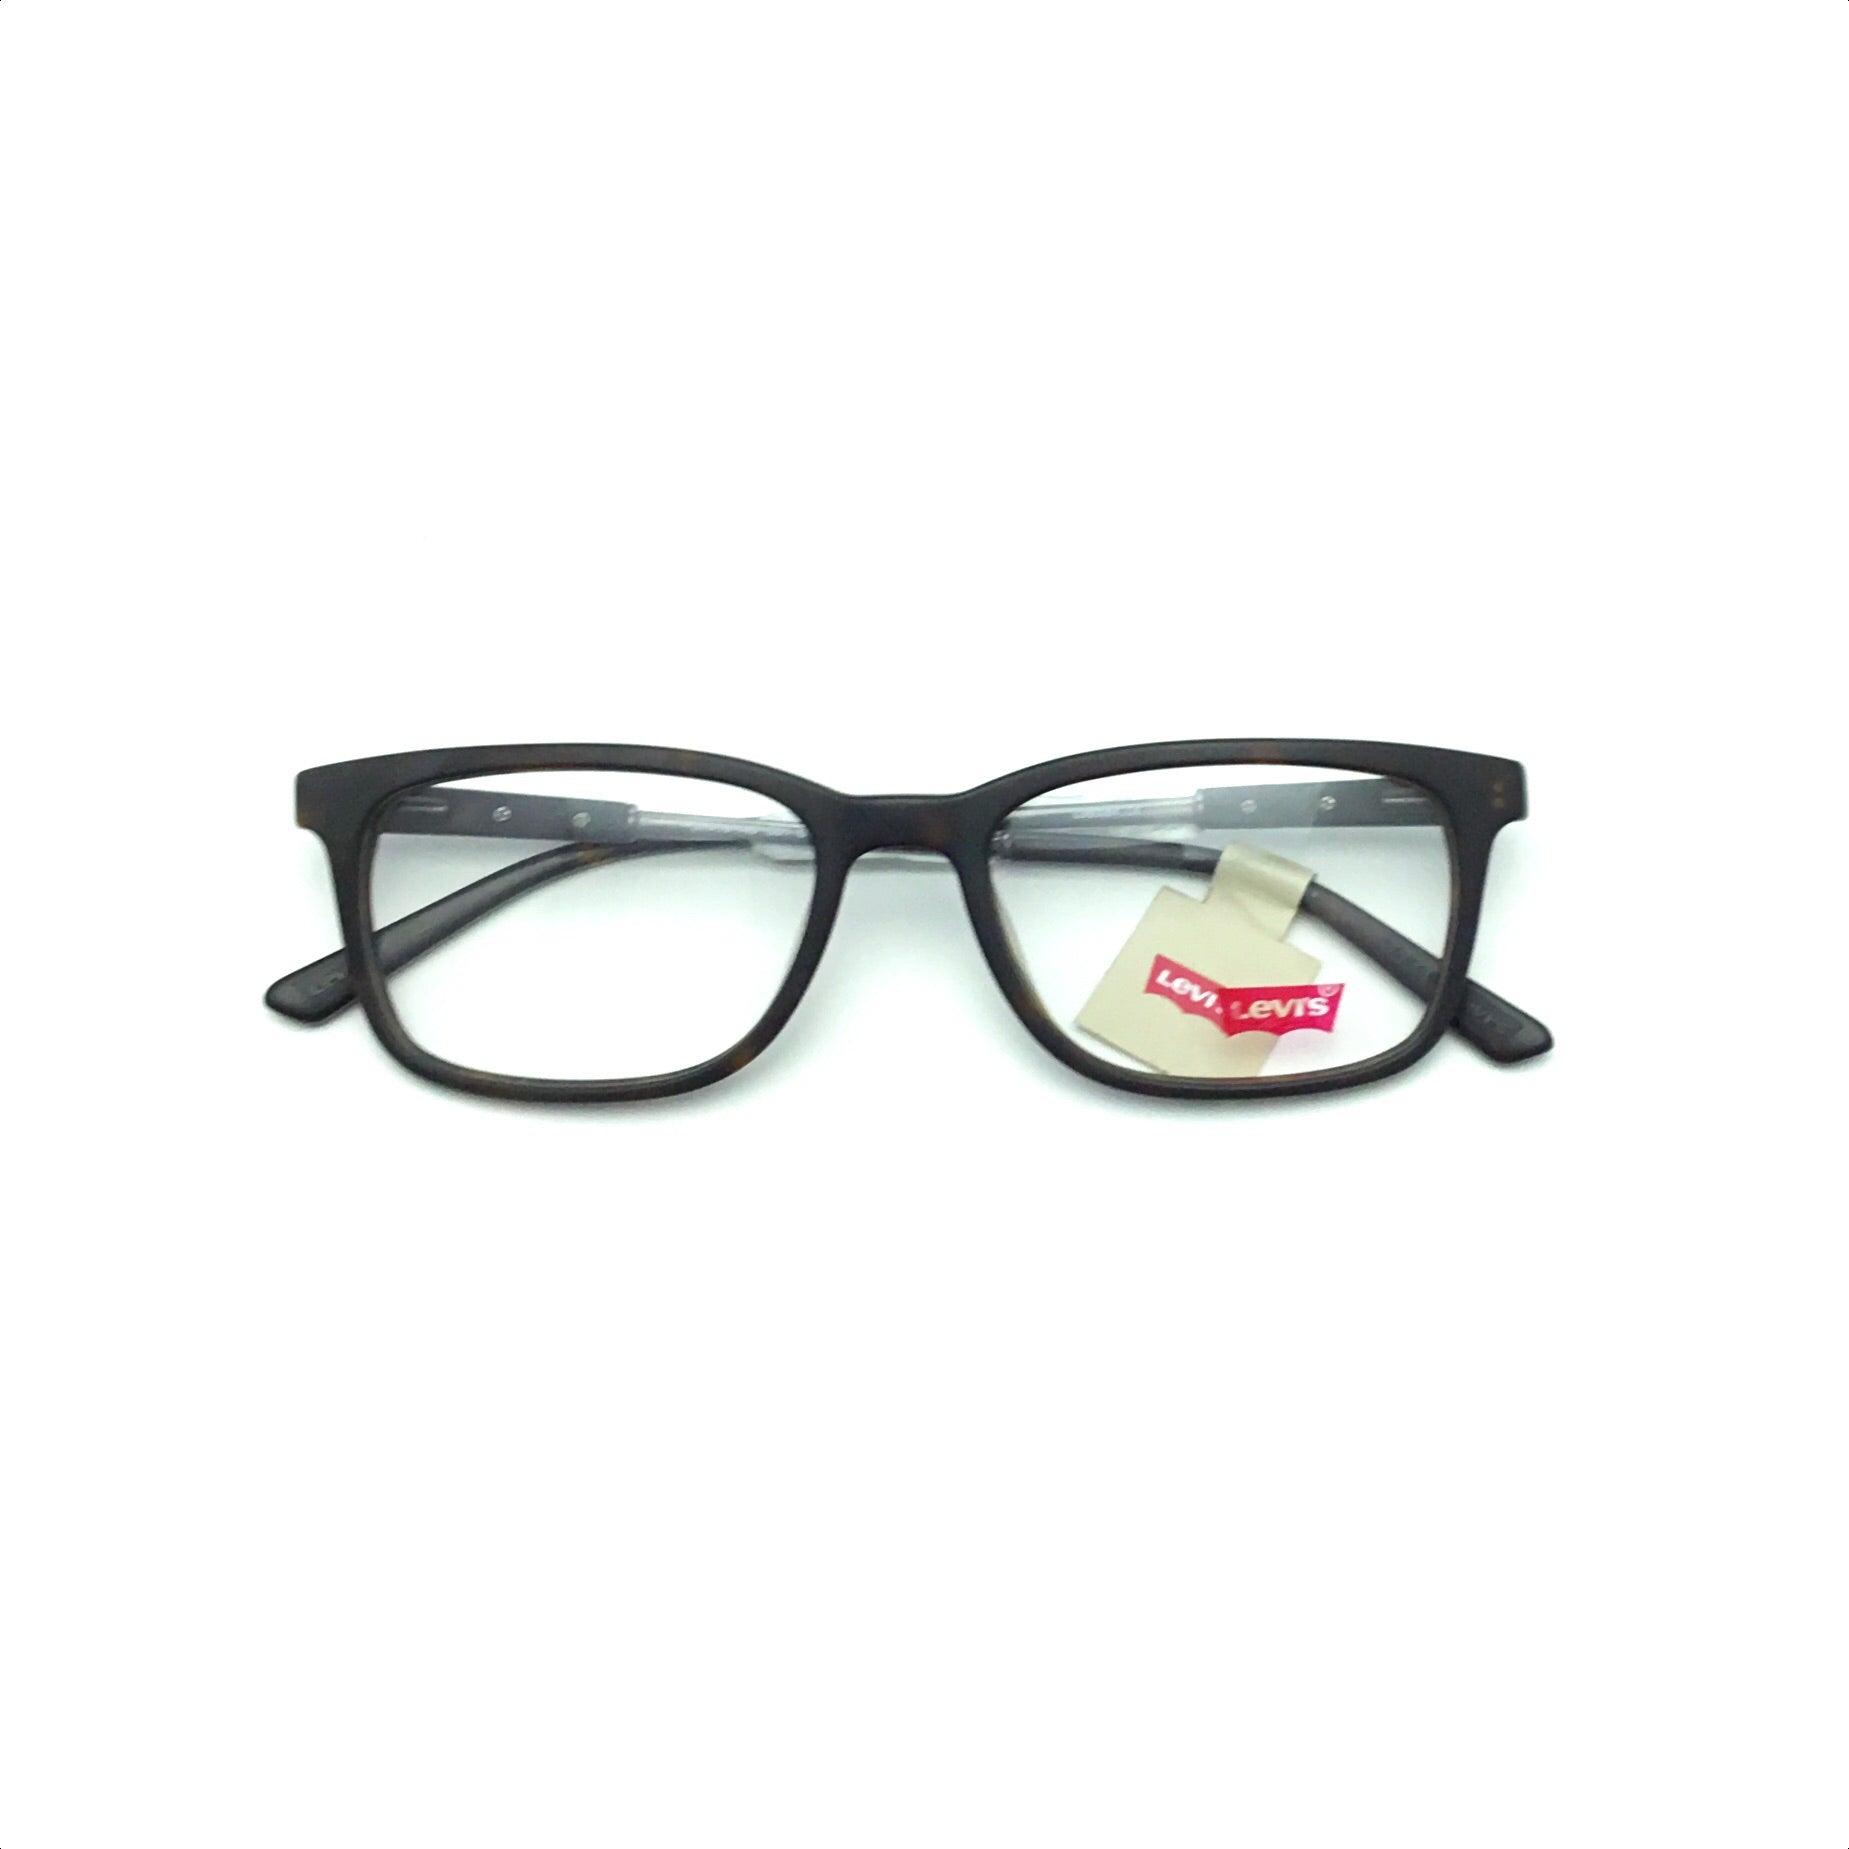 Levi's glasses $149 Rectangular E24